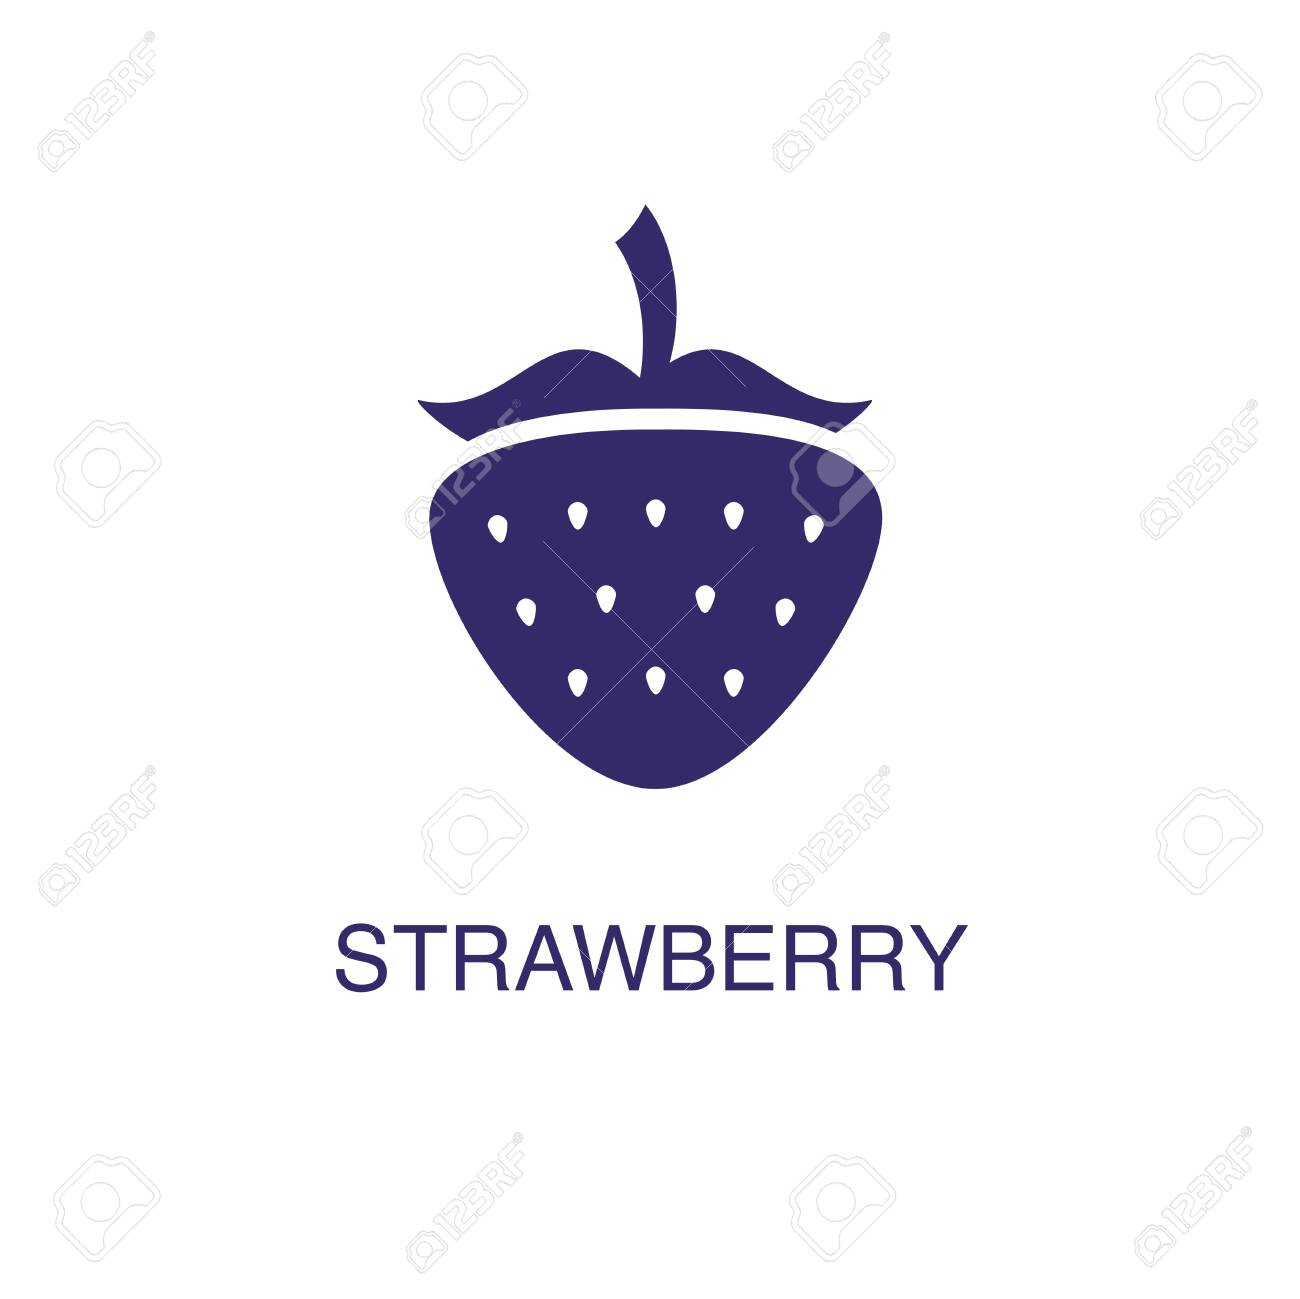 Strawberry element in flat simple style on white background. Strawberry icon, with text name concept template - 134450454